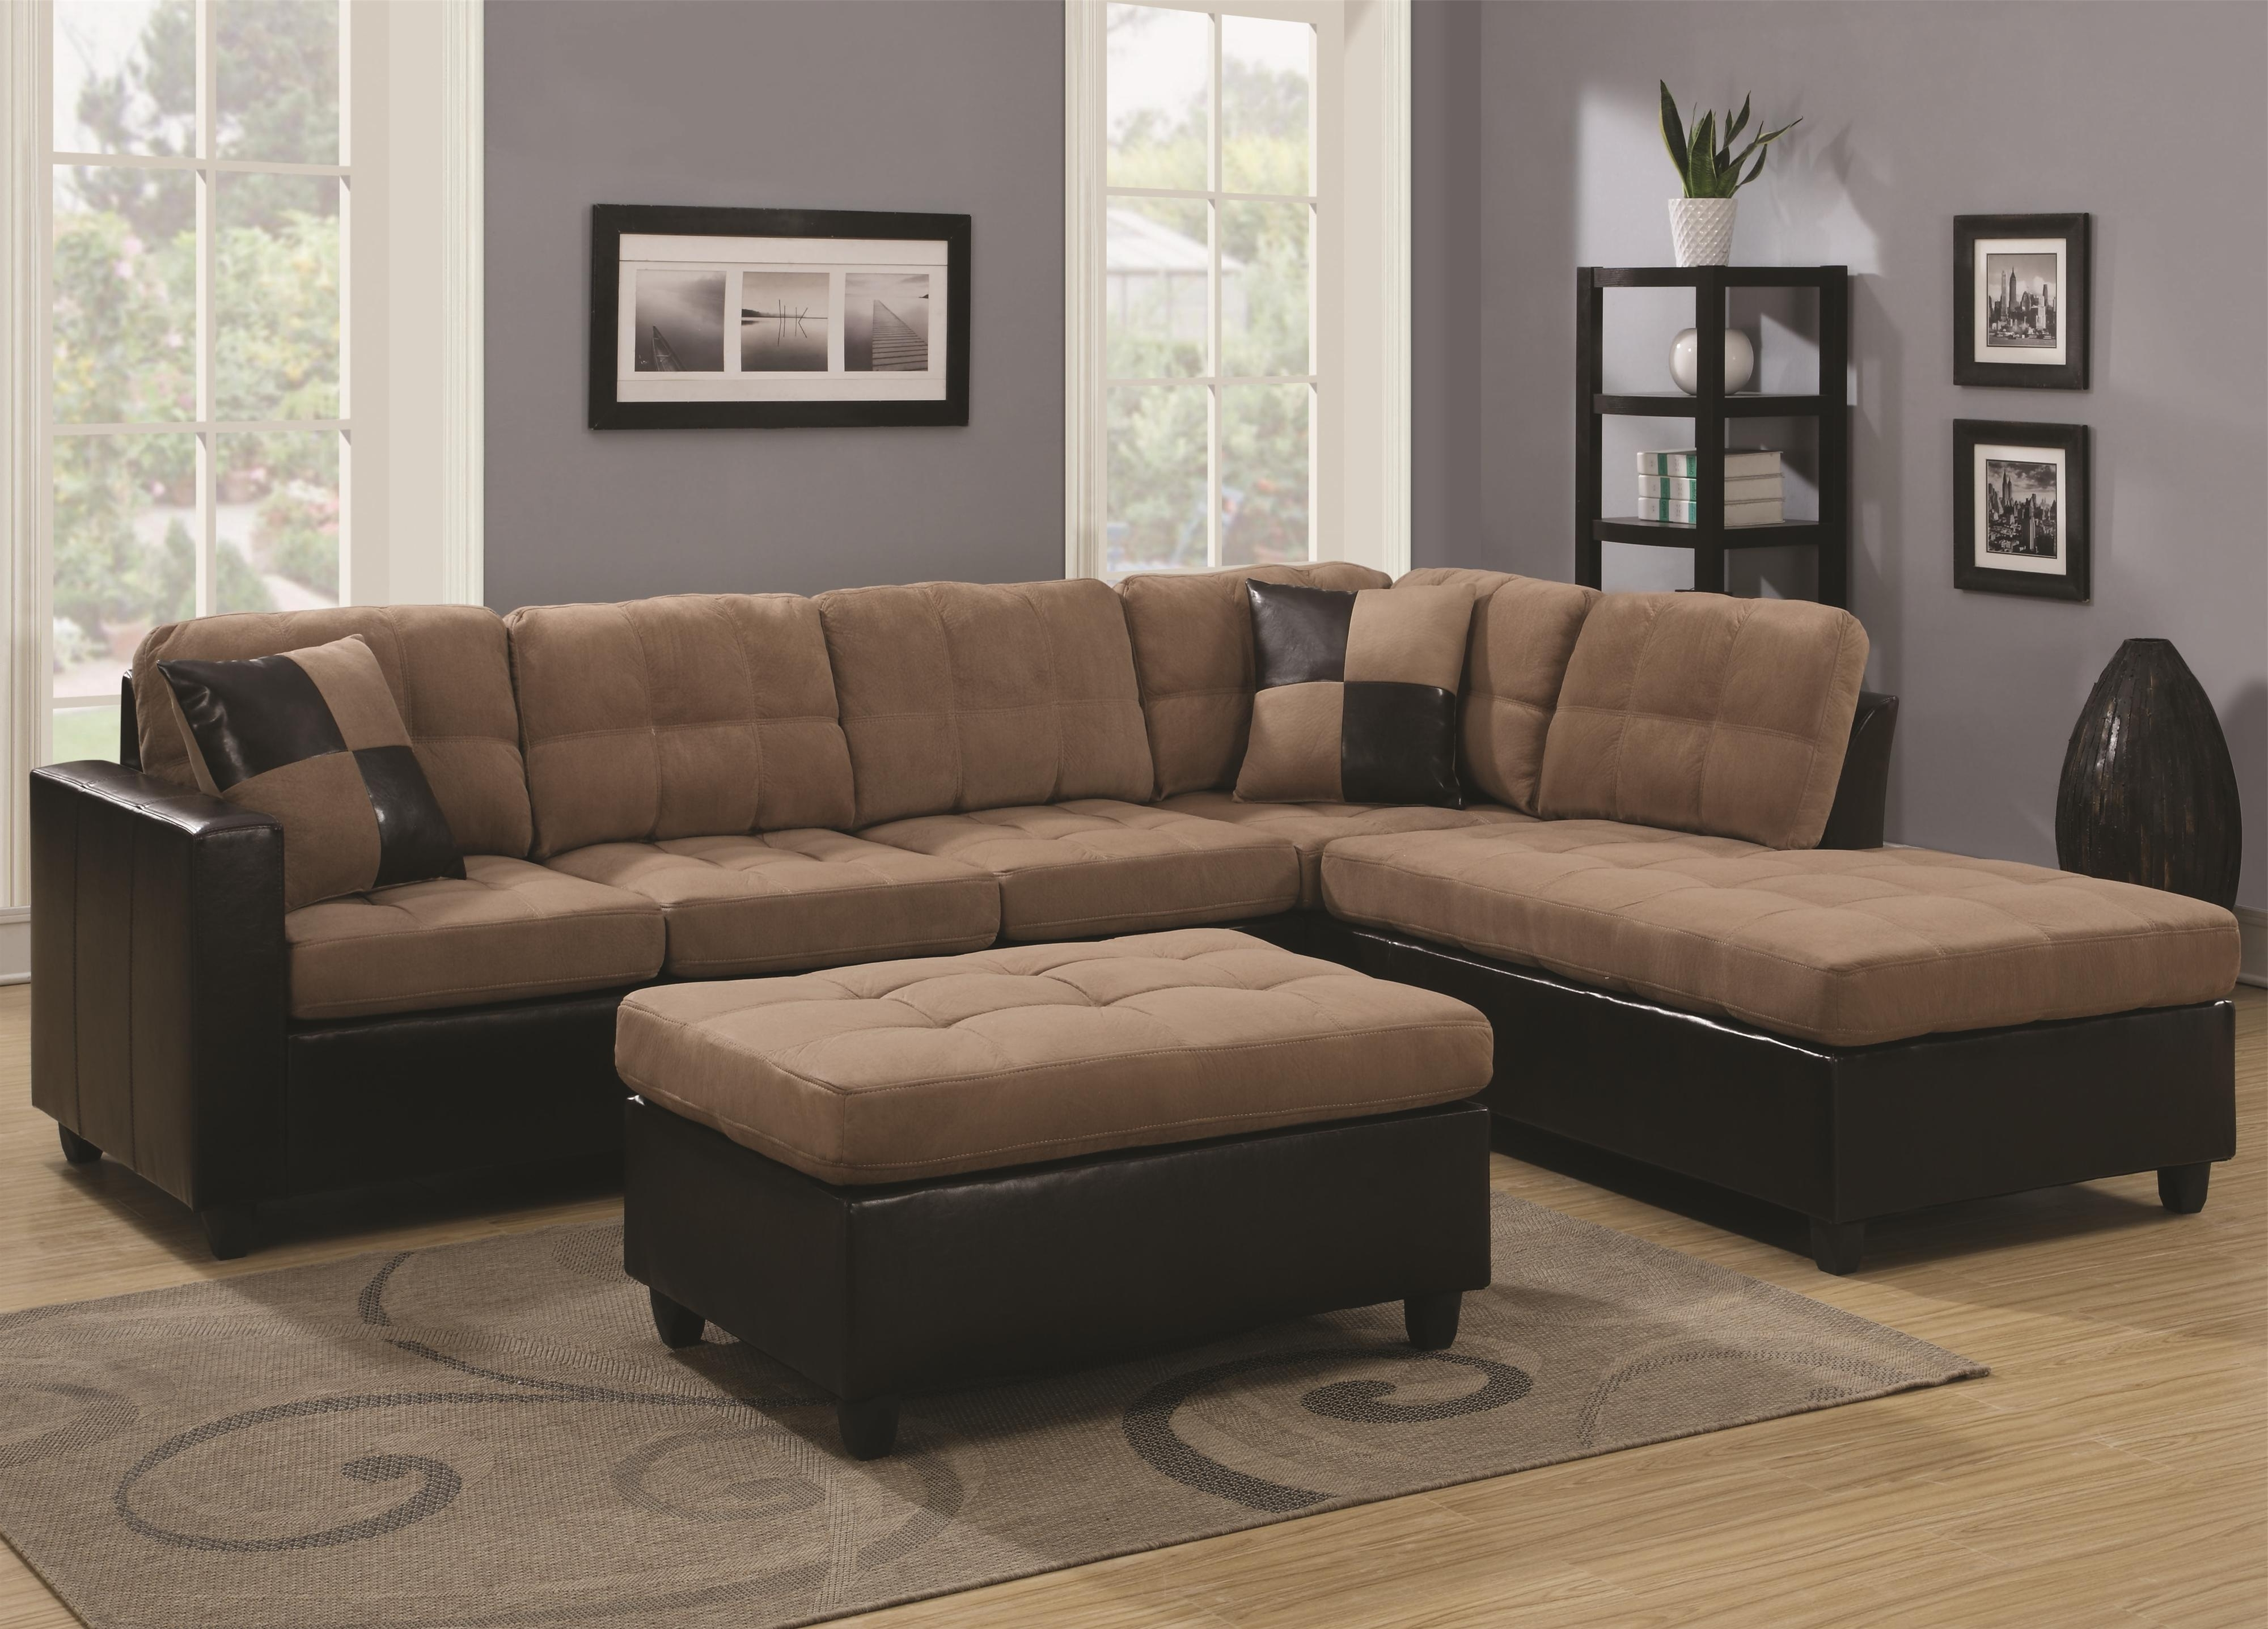 Aifaresidency Pertaining To 2019 Affordable Sectional Sofas (View 14 of 20)